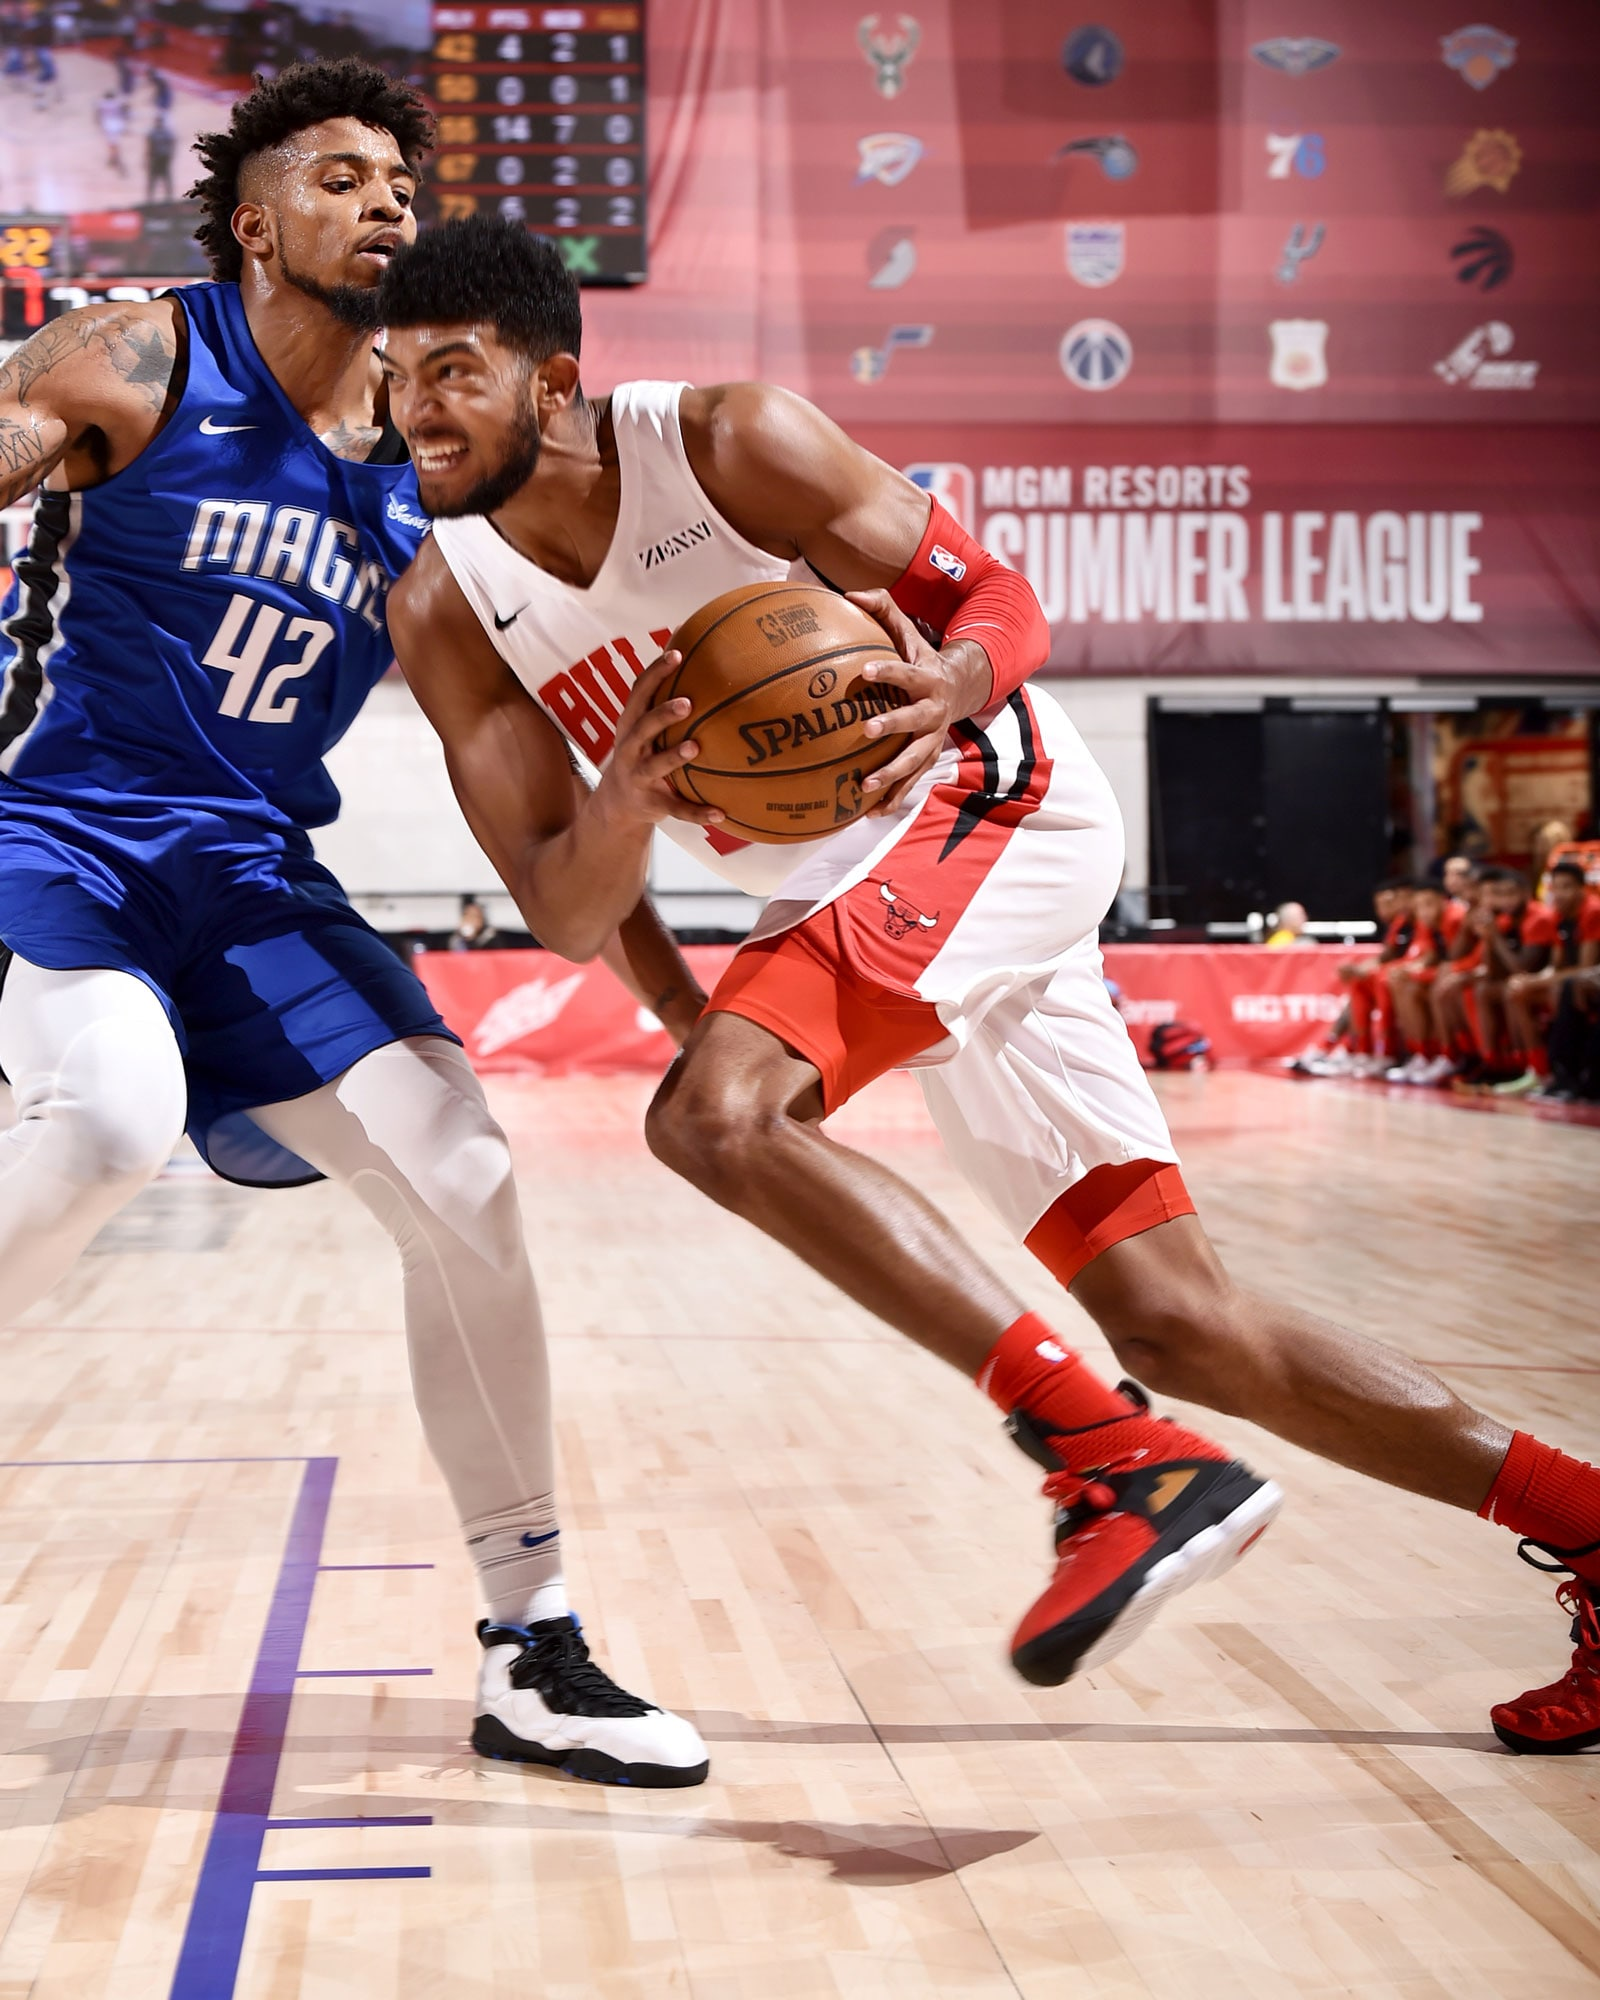 Chandler Hutchison #15 of the Chicago Bulls drives to the basket against the Orlando Magic on July 13, 2019 at the Cox Pavilion in Las Vegas, Nevada.